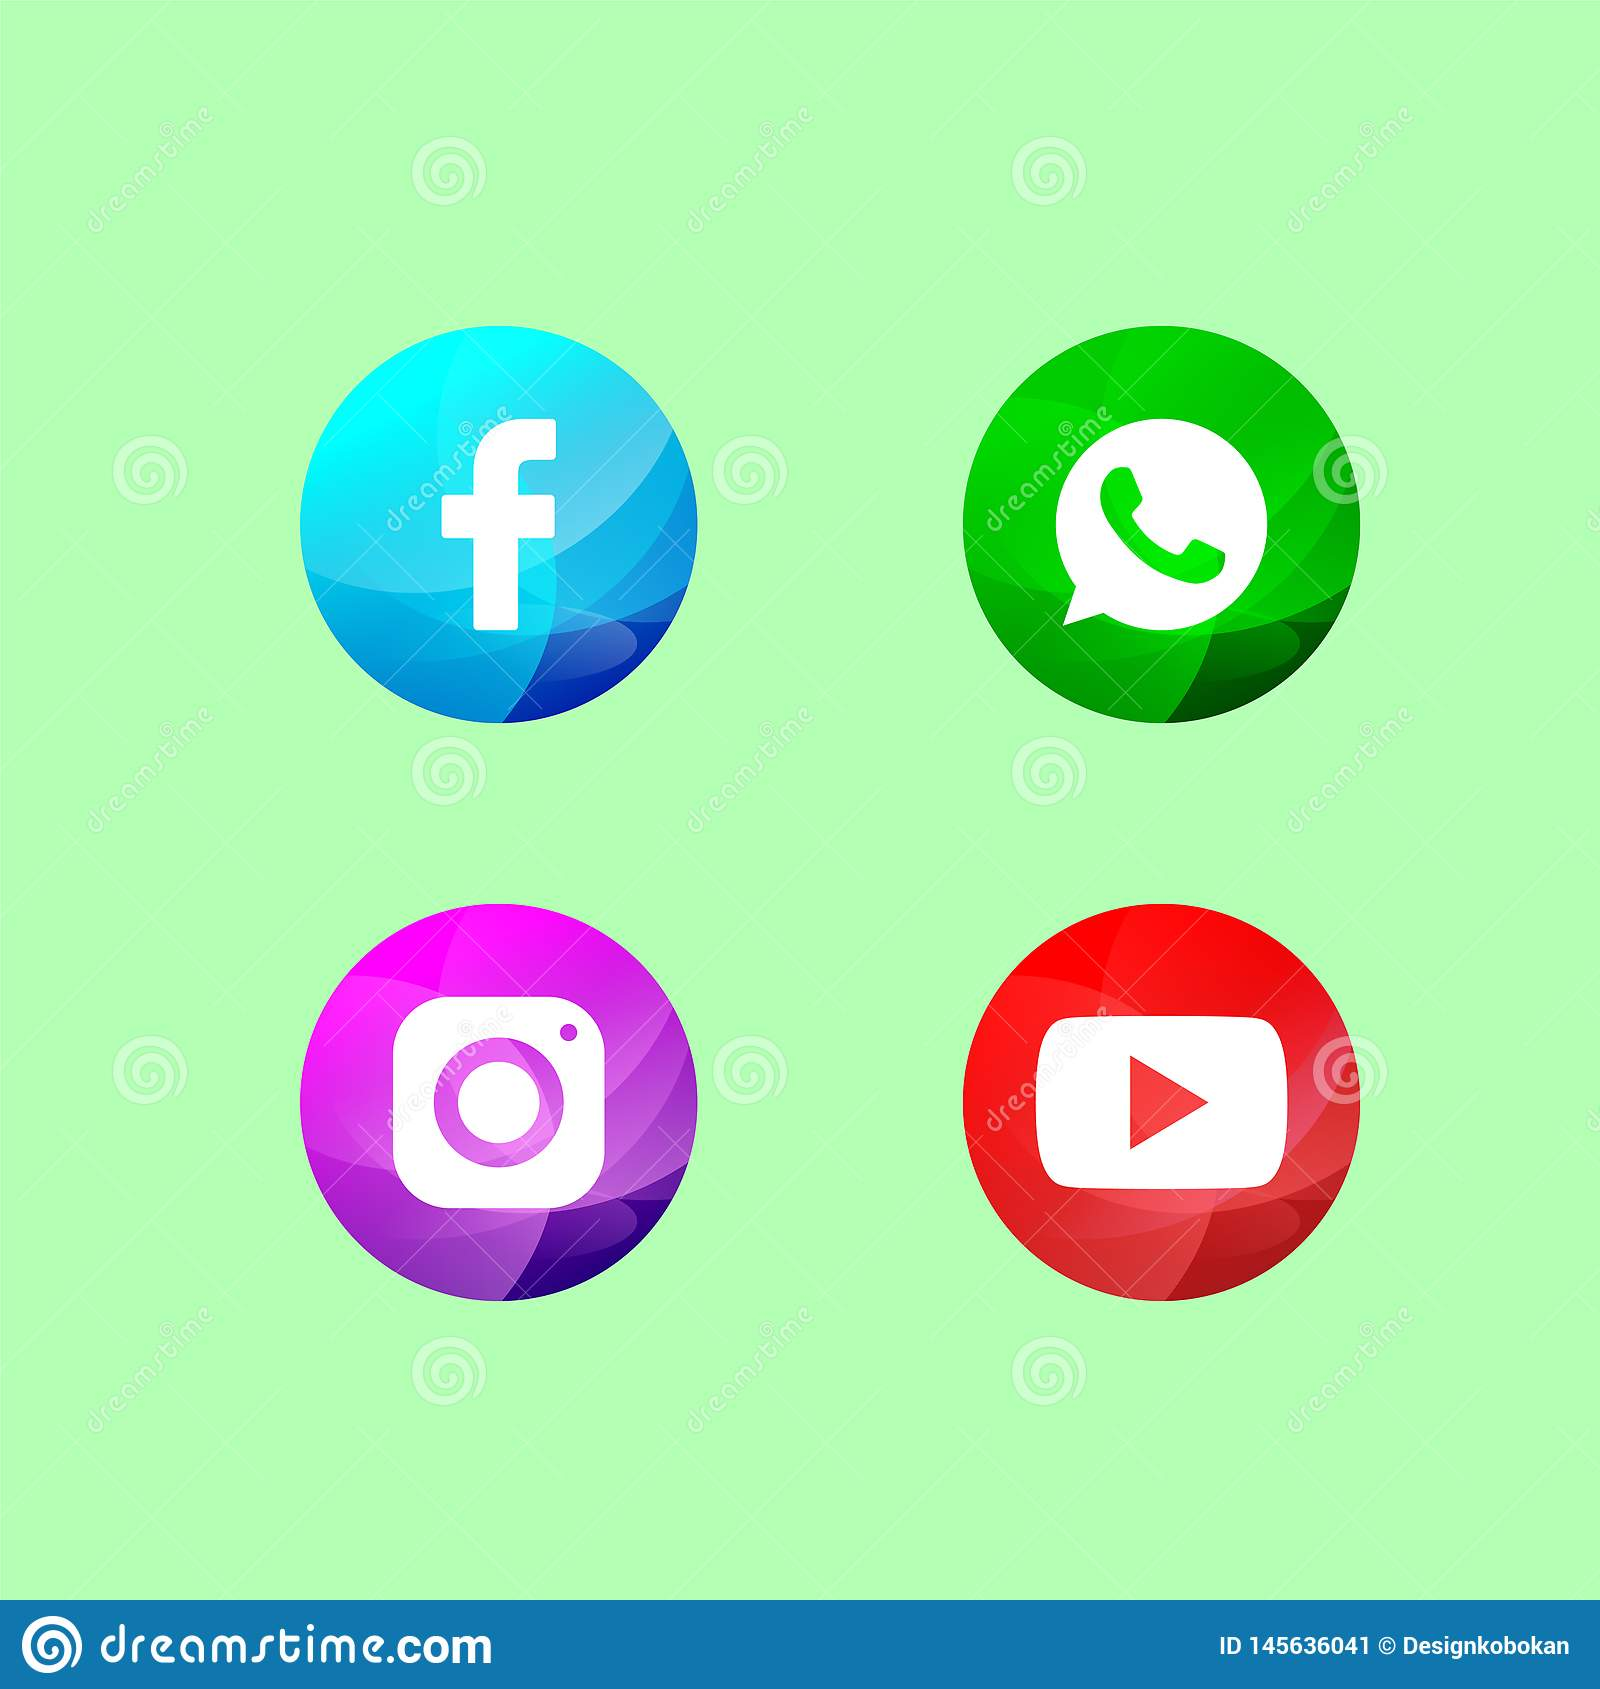 Social media icon with colored circles